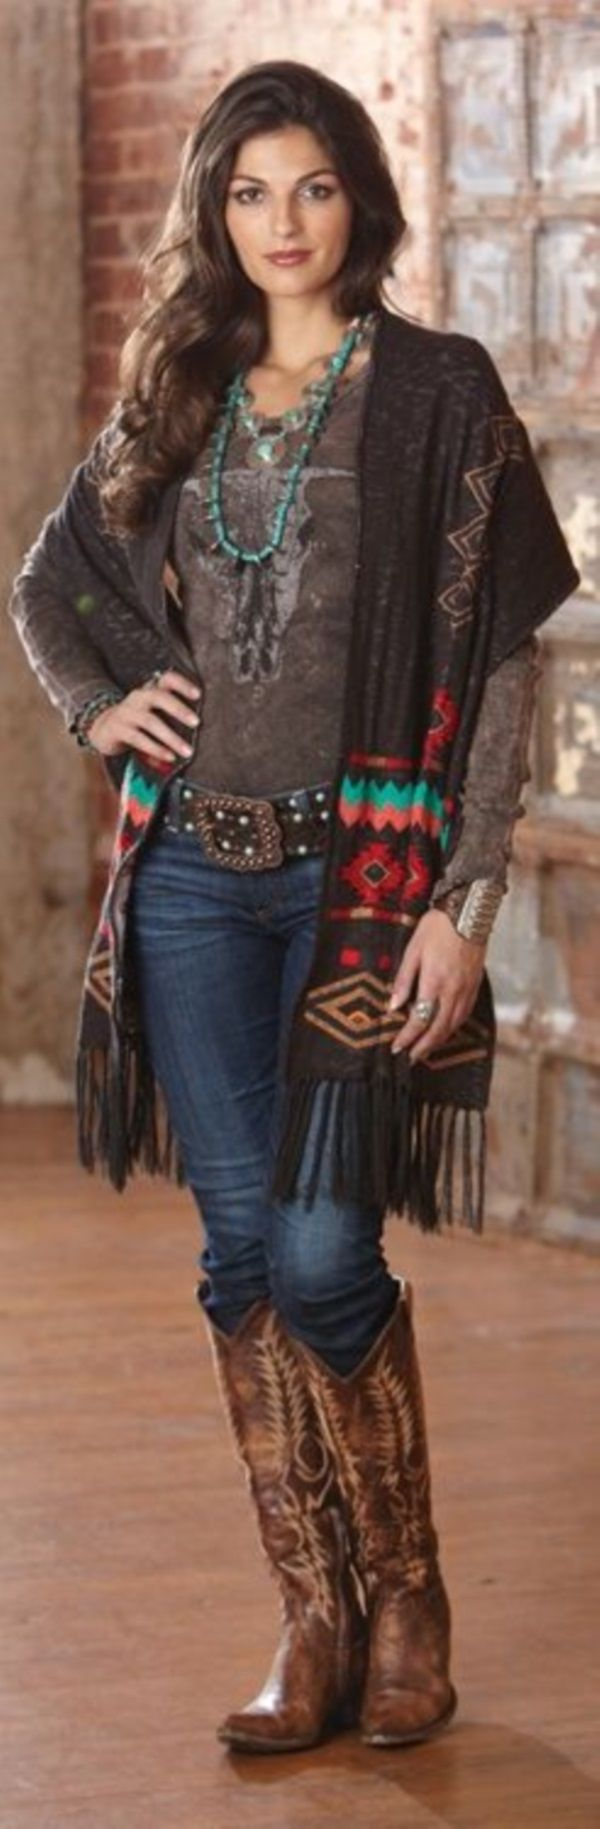 40 Adorable Boho Casual Outfits To Look Cool - Fashion 2015